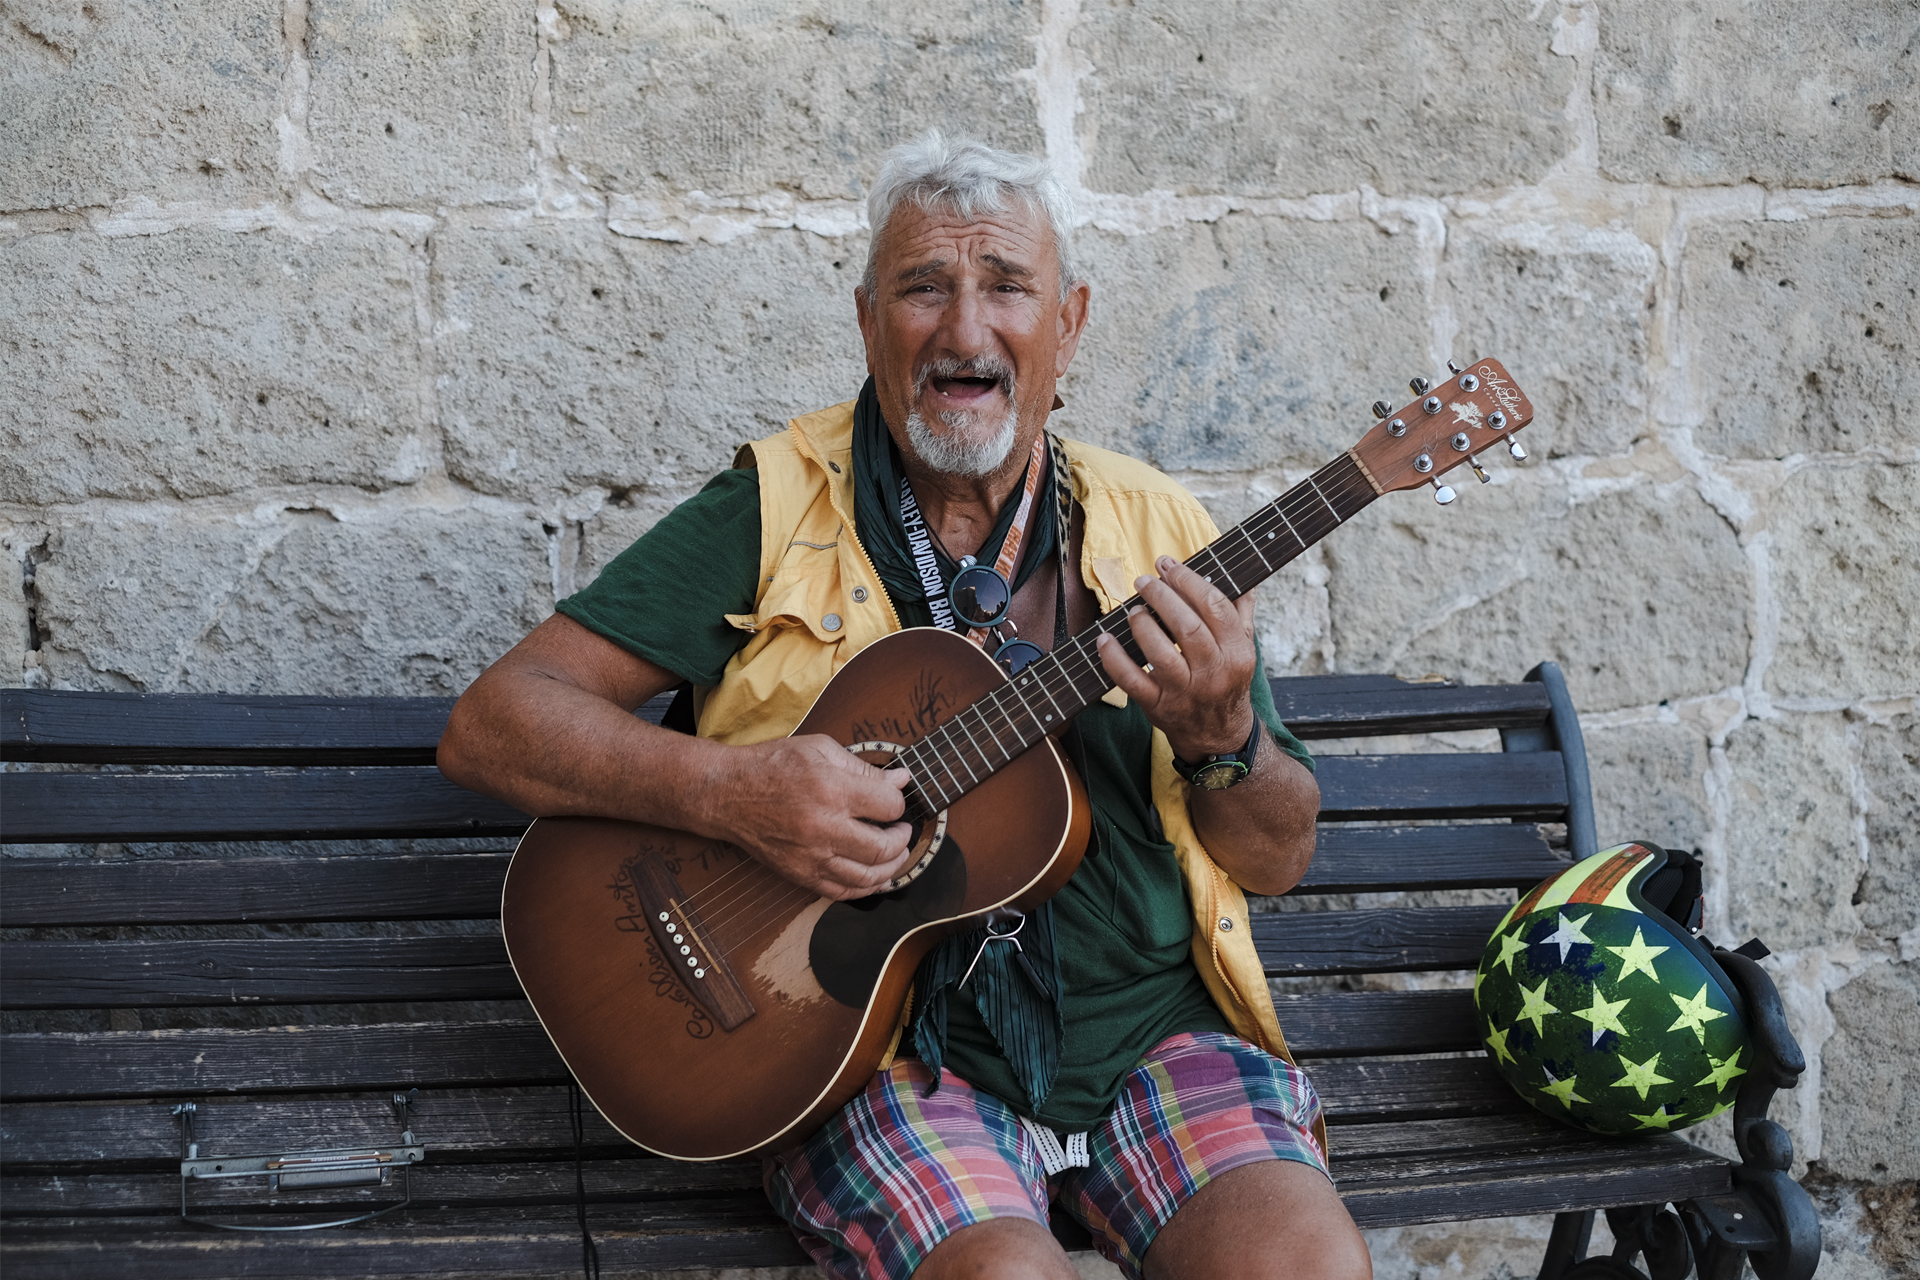 A glimpse of Puglia, Tony playing the guitar on a bench in Polignano